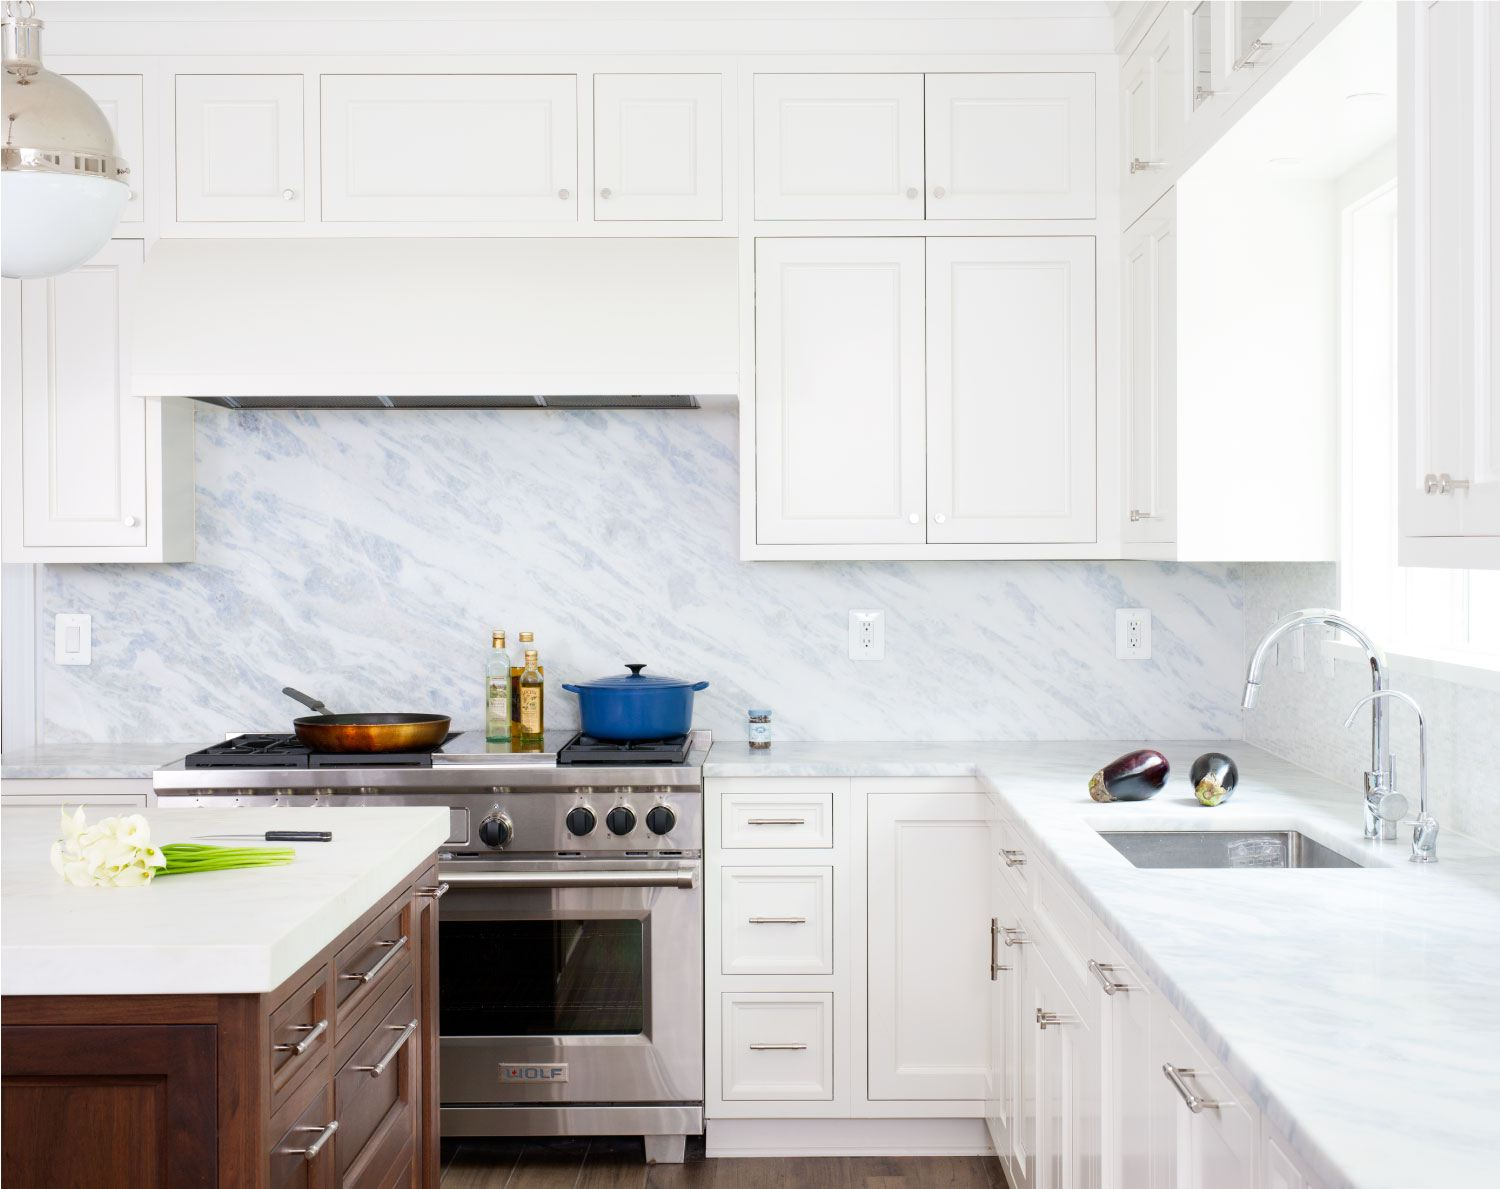 19 Marble Backsplash Ideas For Every Decor Taste